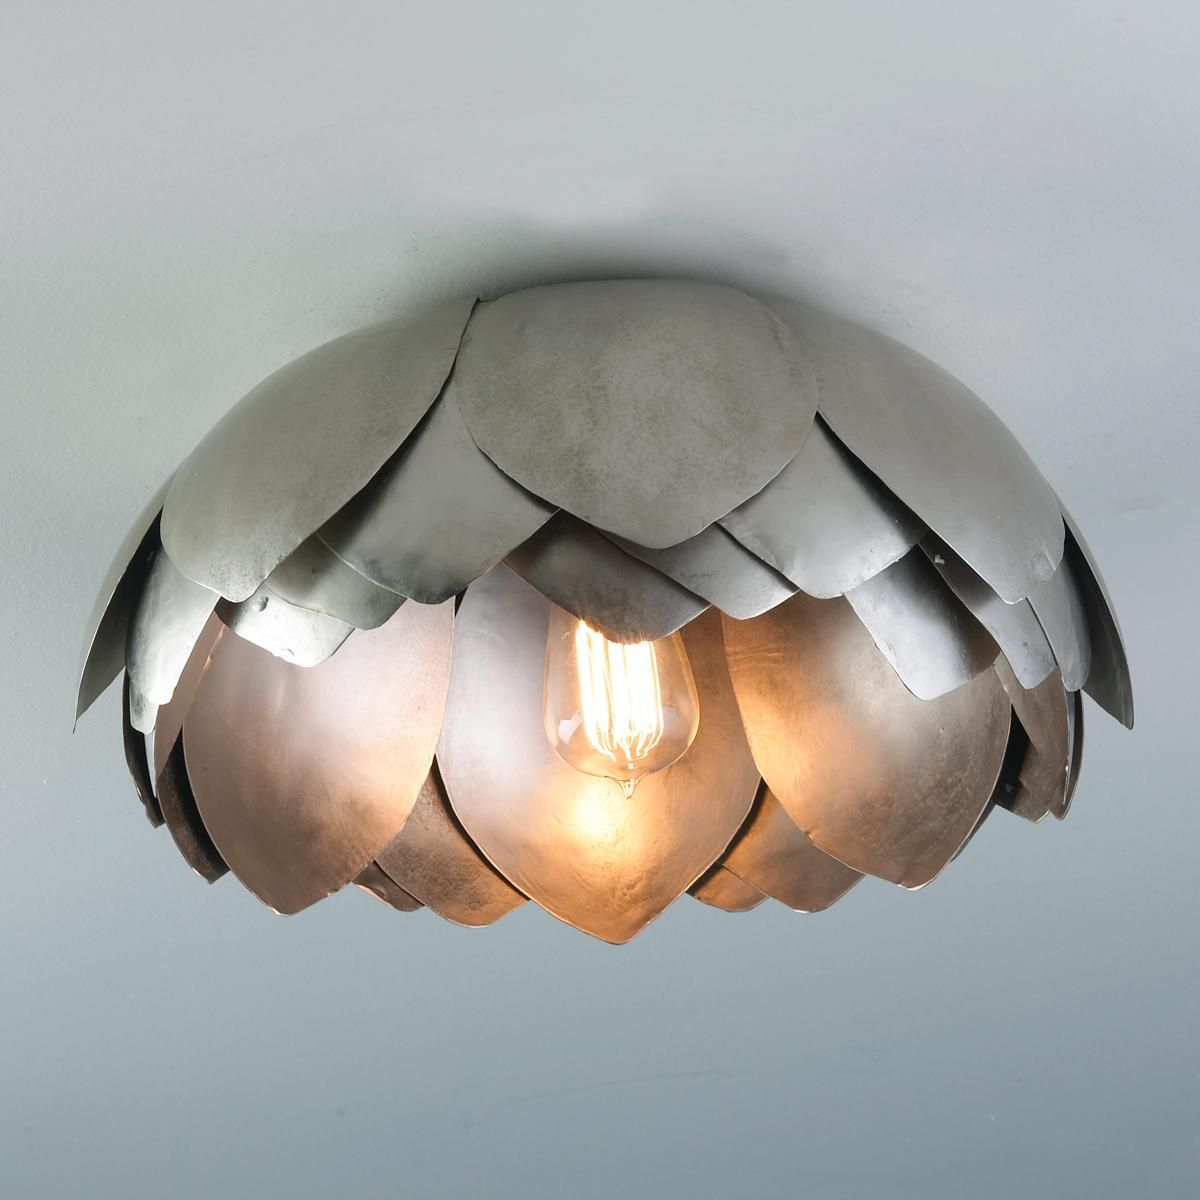 Metal Lotus Flush Mount Ceiling Light   contemporary   ceiling lighting    Shades of Light   can t find   DIY Metal Lotus Flush Mount Ceiling Light for my living room because  . Flush Ceiling Light Shades. Home Design Ideas